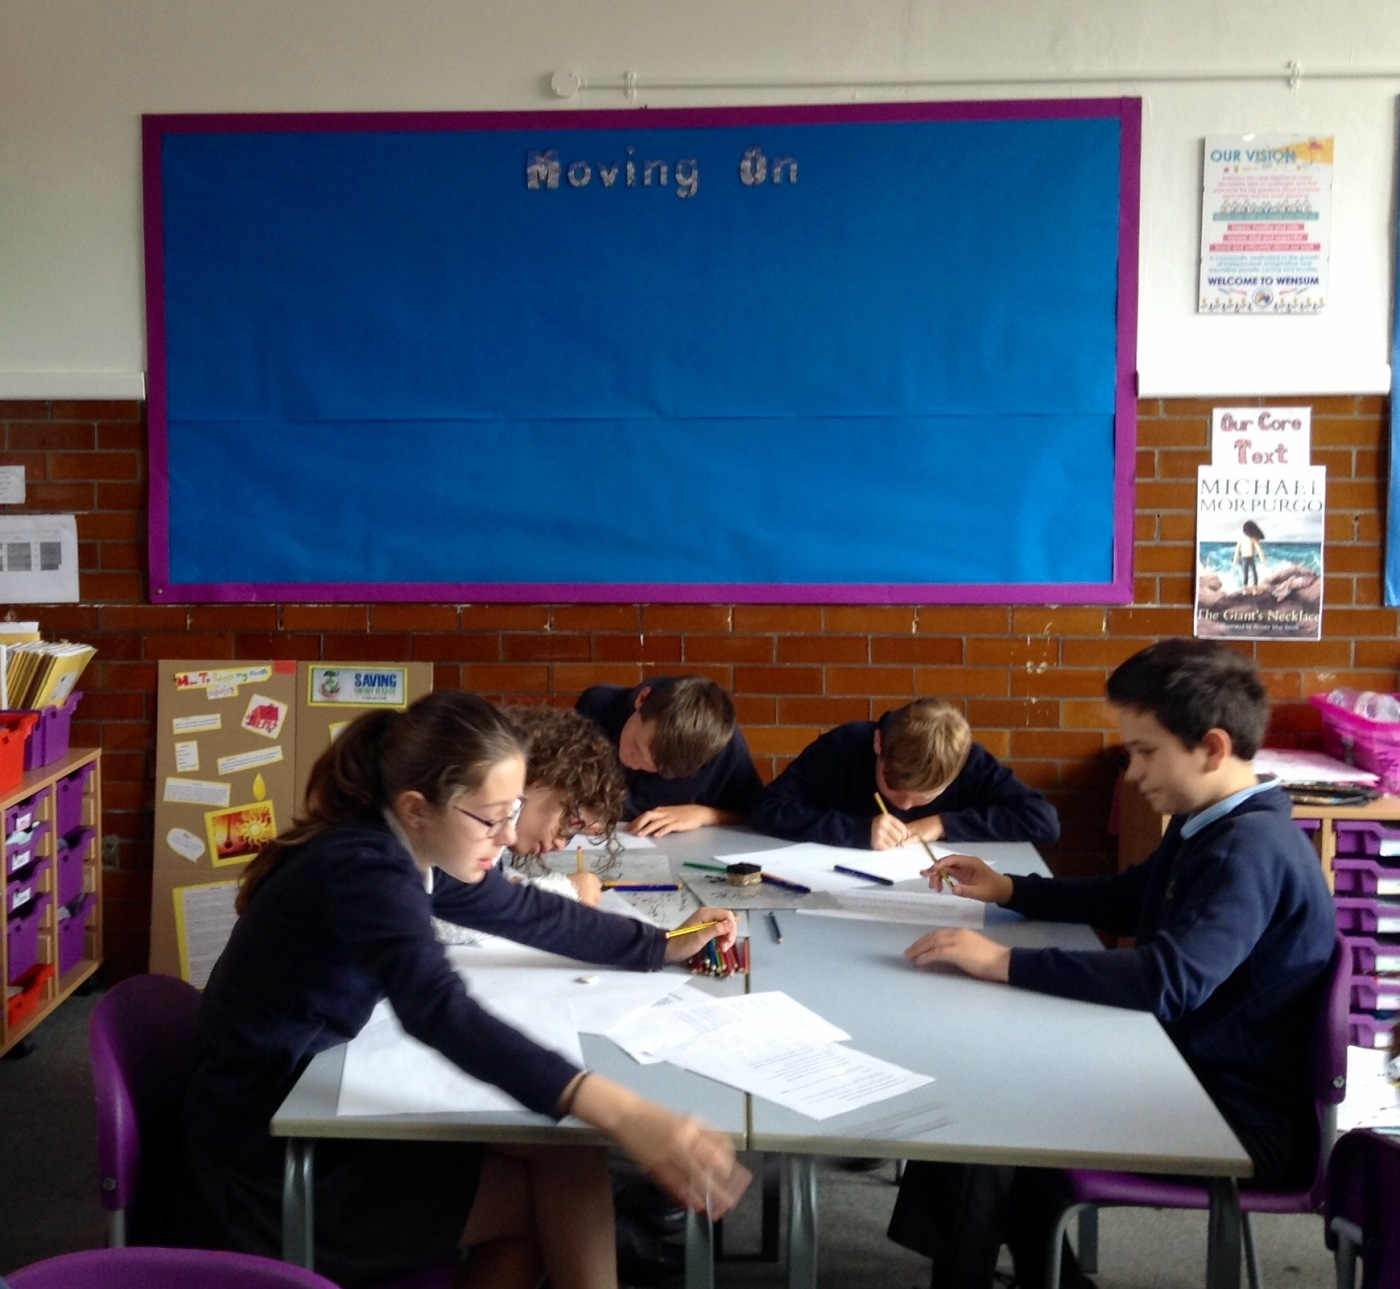 Students at Wensum Primary Year 6